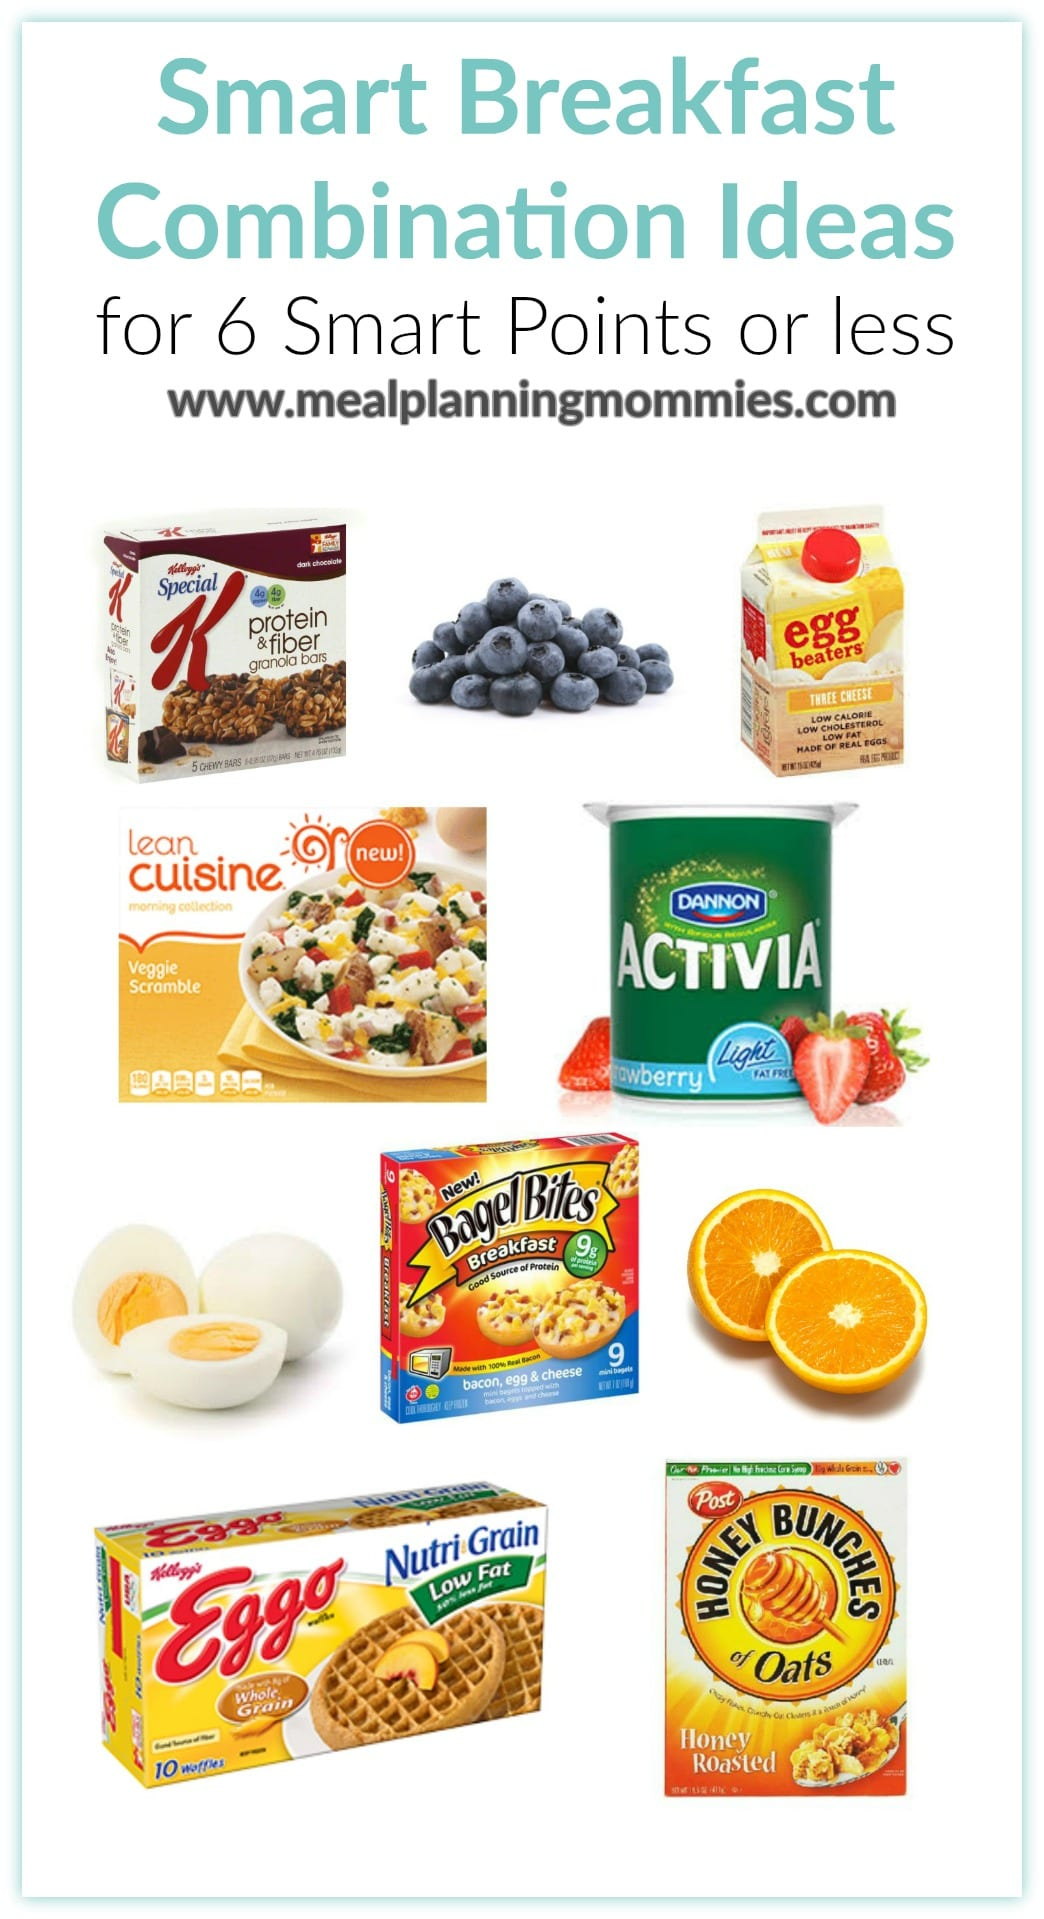 Smart Breakfast Combination Ideas For 6 Points Of Less Meal Planning Mommies